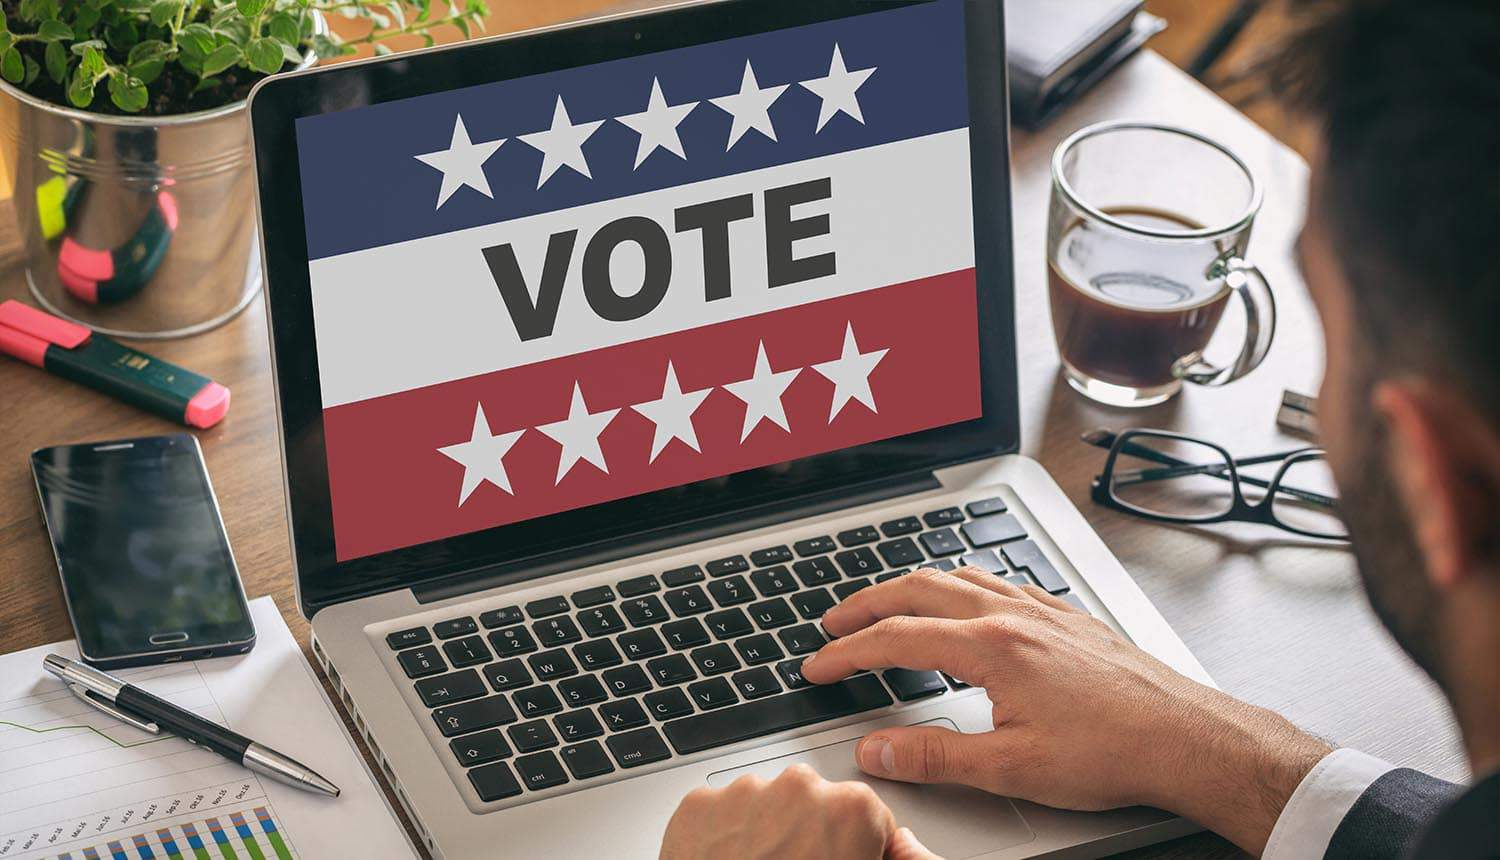 Man doing online voting on laptop showing the security flaws in U.S. online voting system that raised alarm over potential vote manipulation